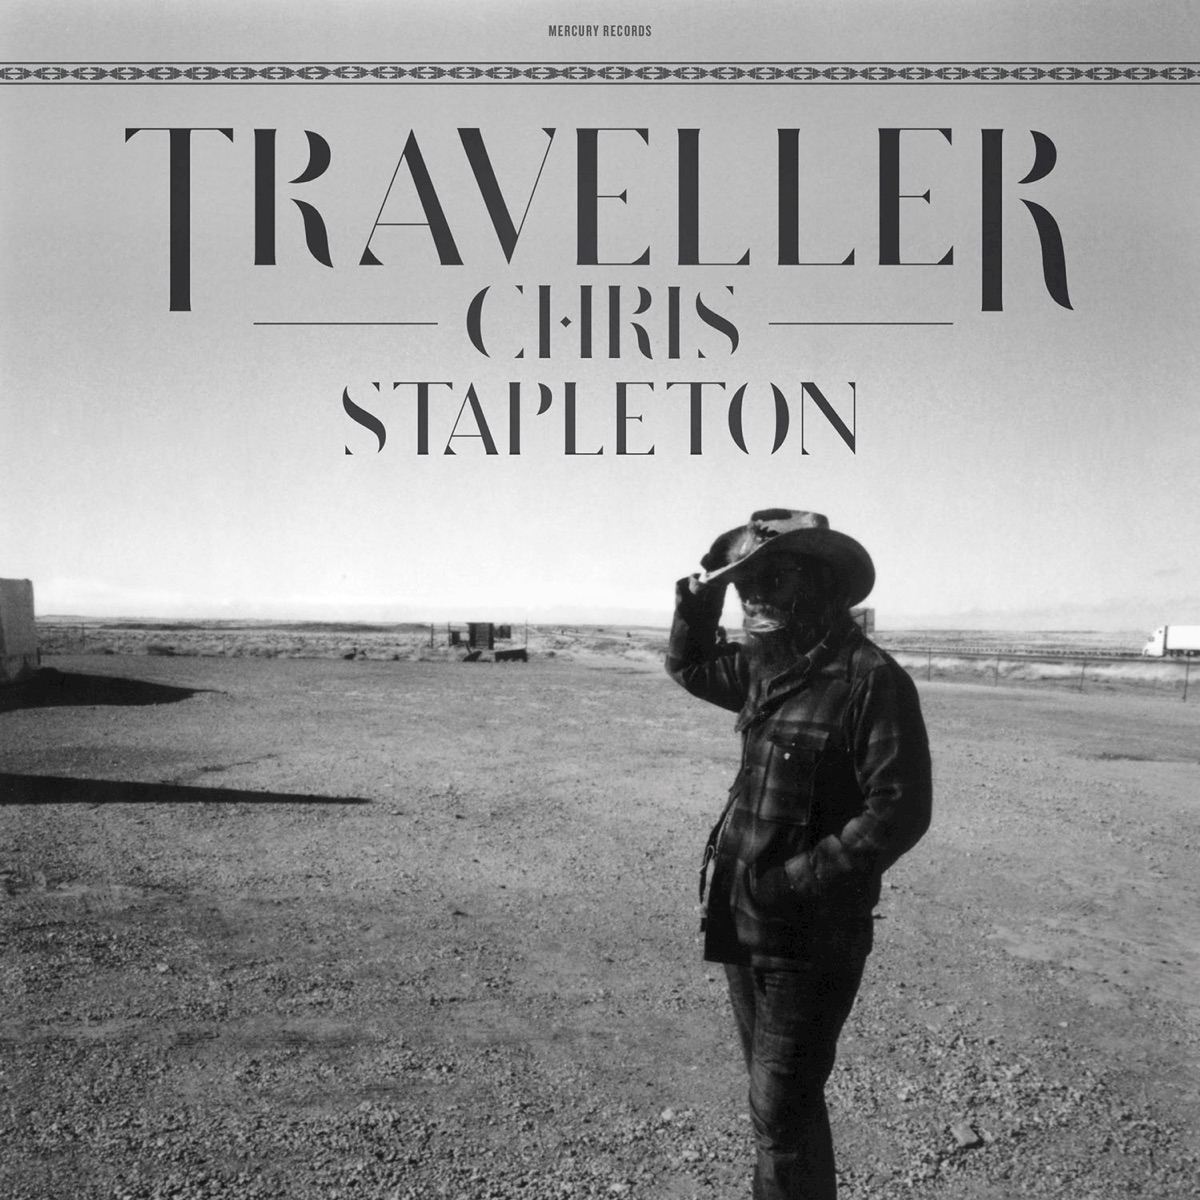 Traveller Chris Stapleton CD cover